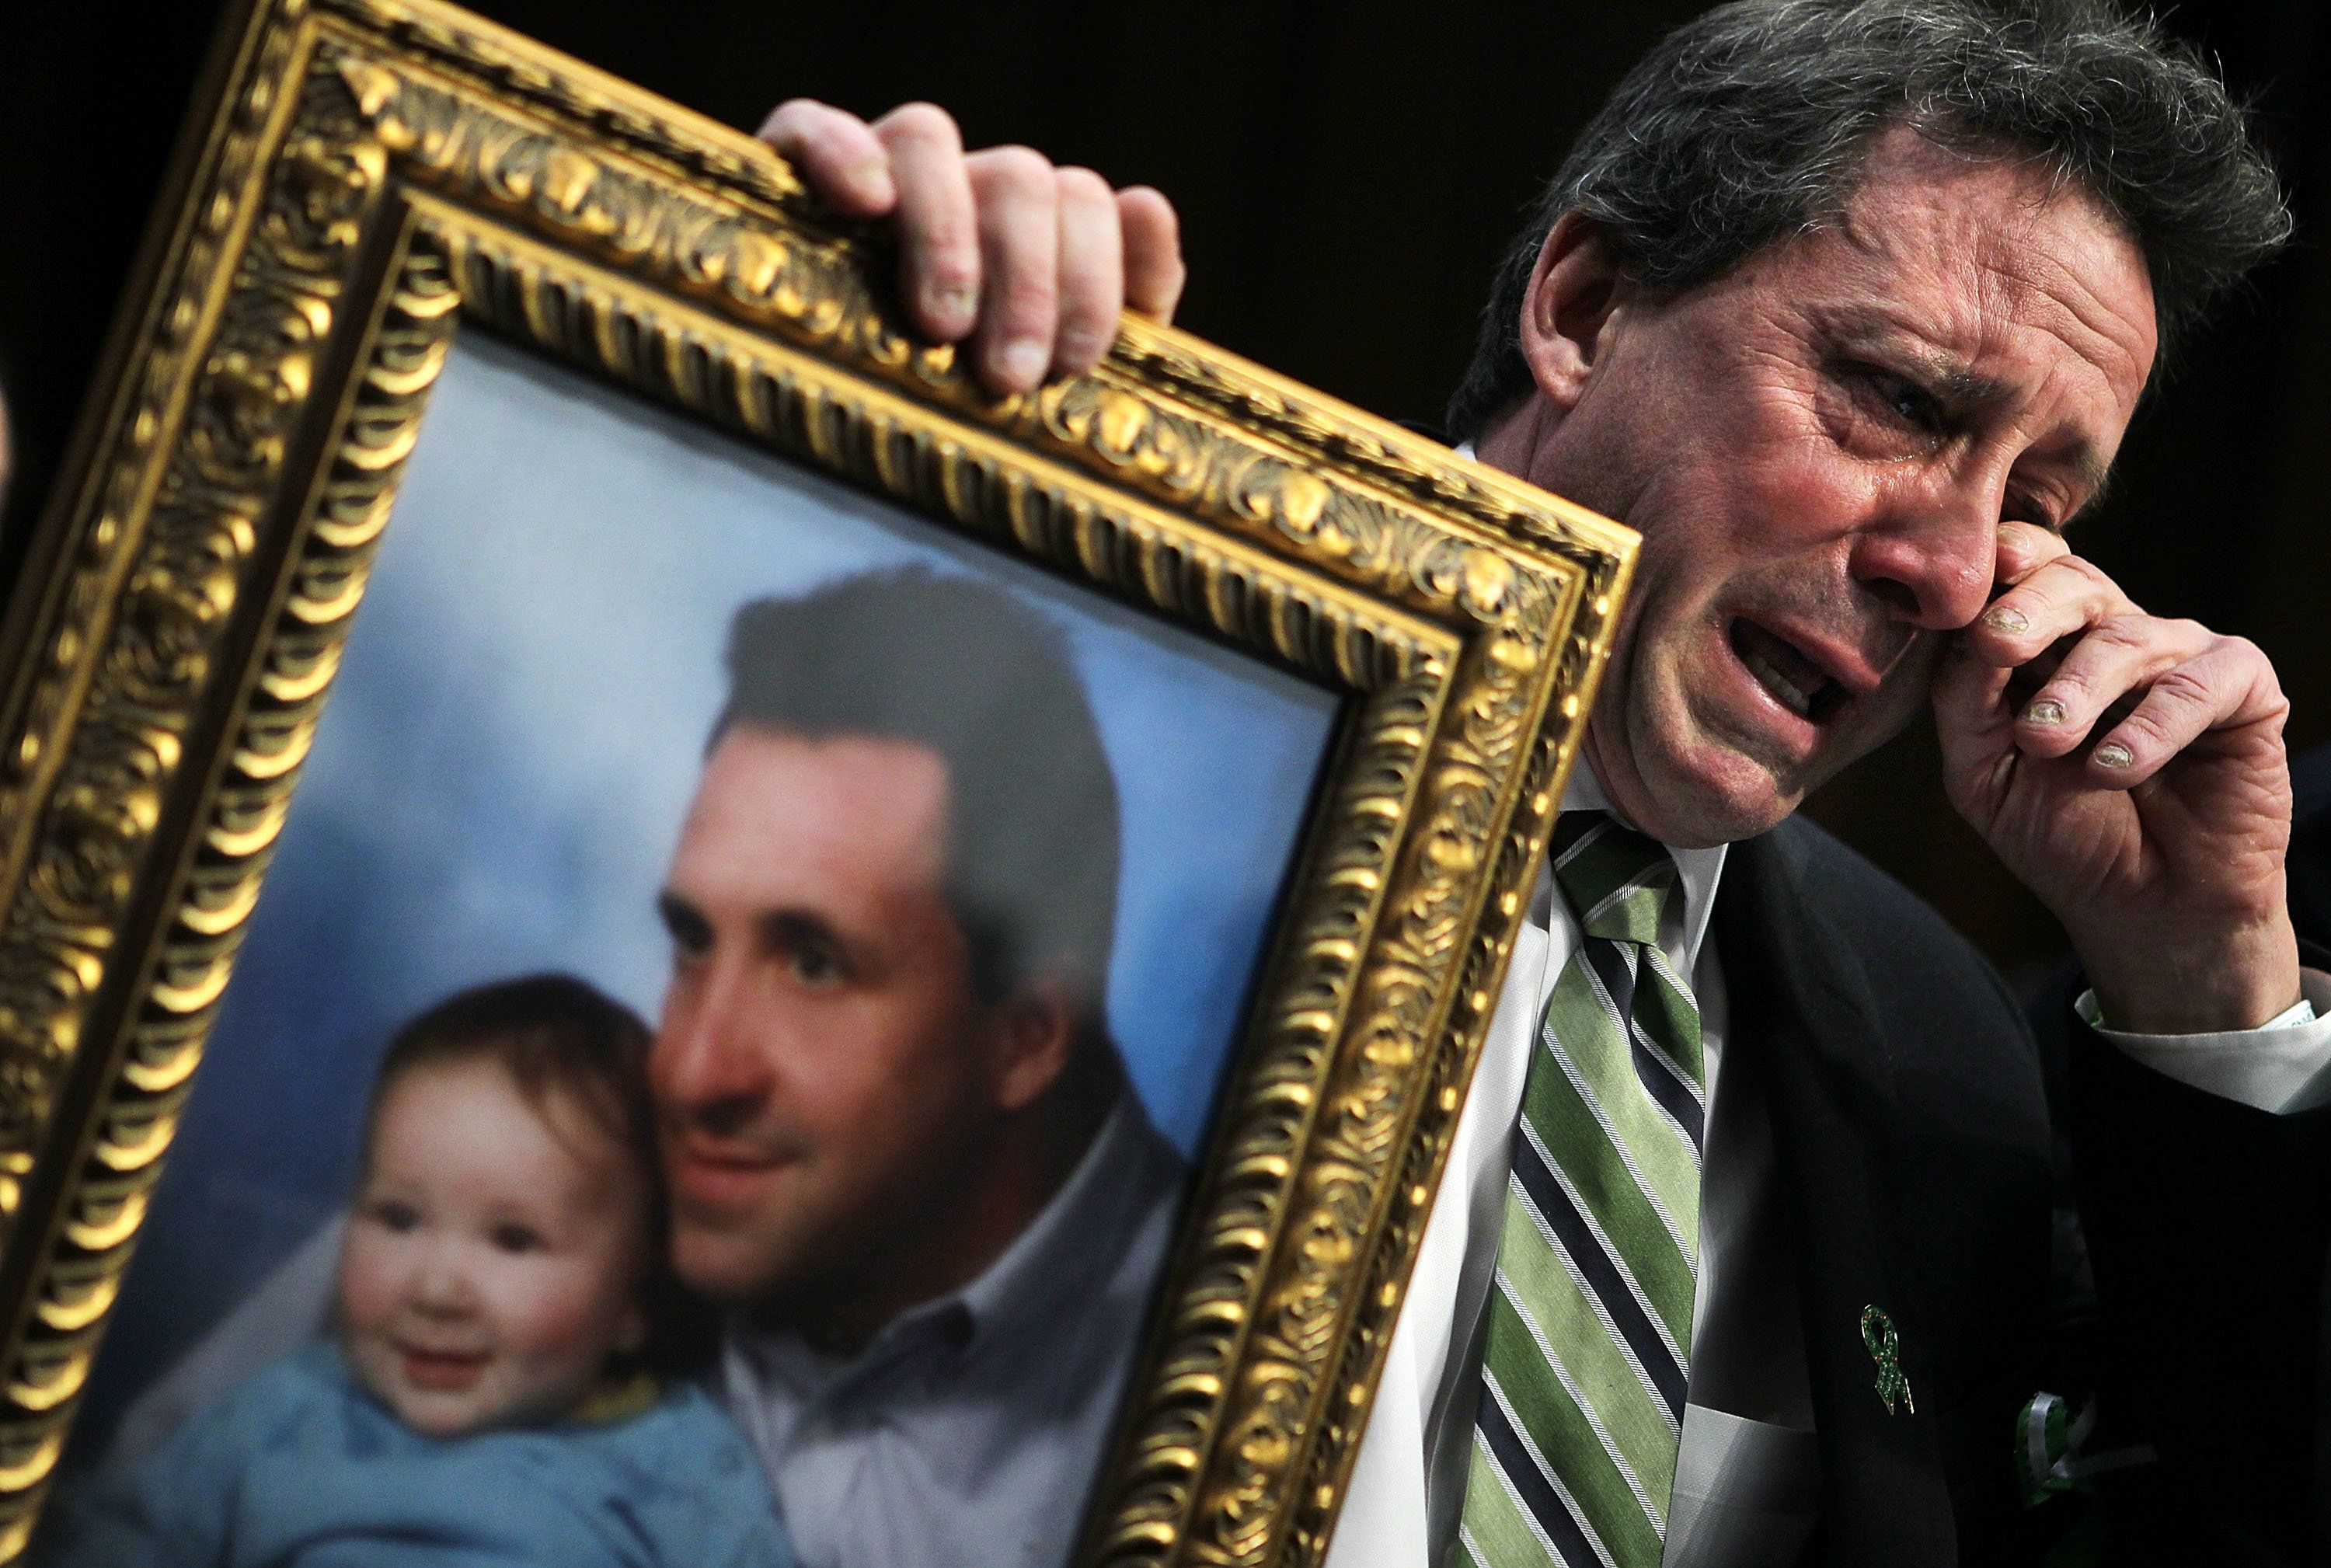 WASHINGTON, DC - FEBRUARY 27:  Neil Heslin, father of six-year-old Sandy Hook Elementary School shooting victim Jesse Lewis, wipes tears as he testifies during a hearing before the Senate Judiciary Committee February 27, 2013 on Capitol Hill in Washington, DC. The committee held a hearing on 'The Assault Weapons Ban of 2013.'  (Photo by Alex Wong/Getty Images)